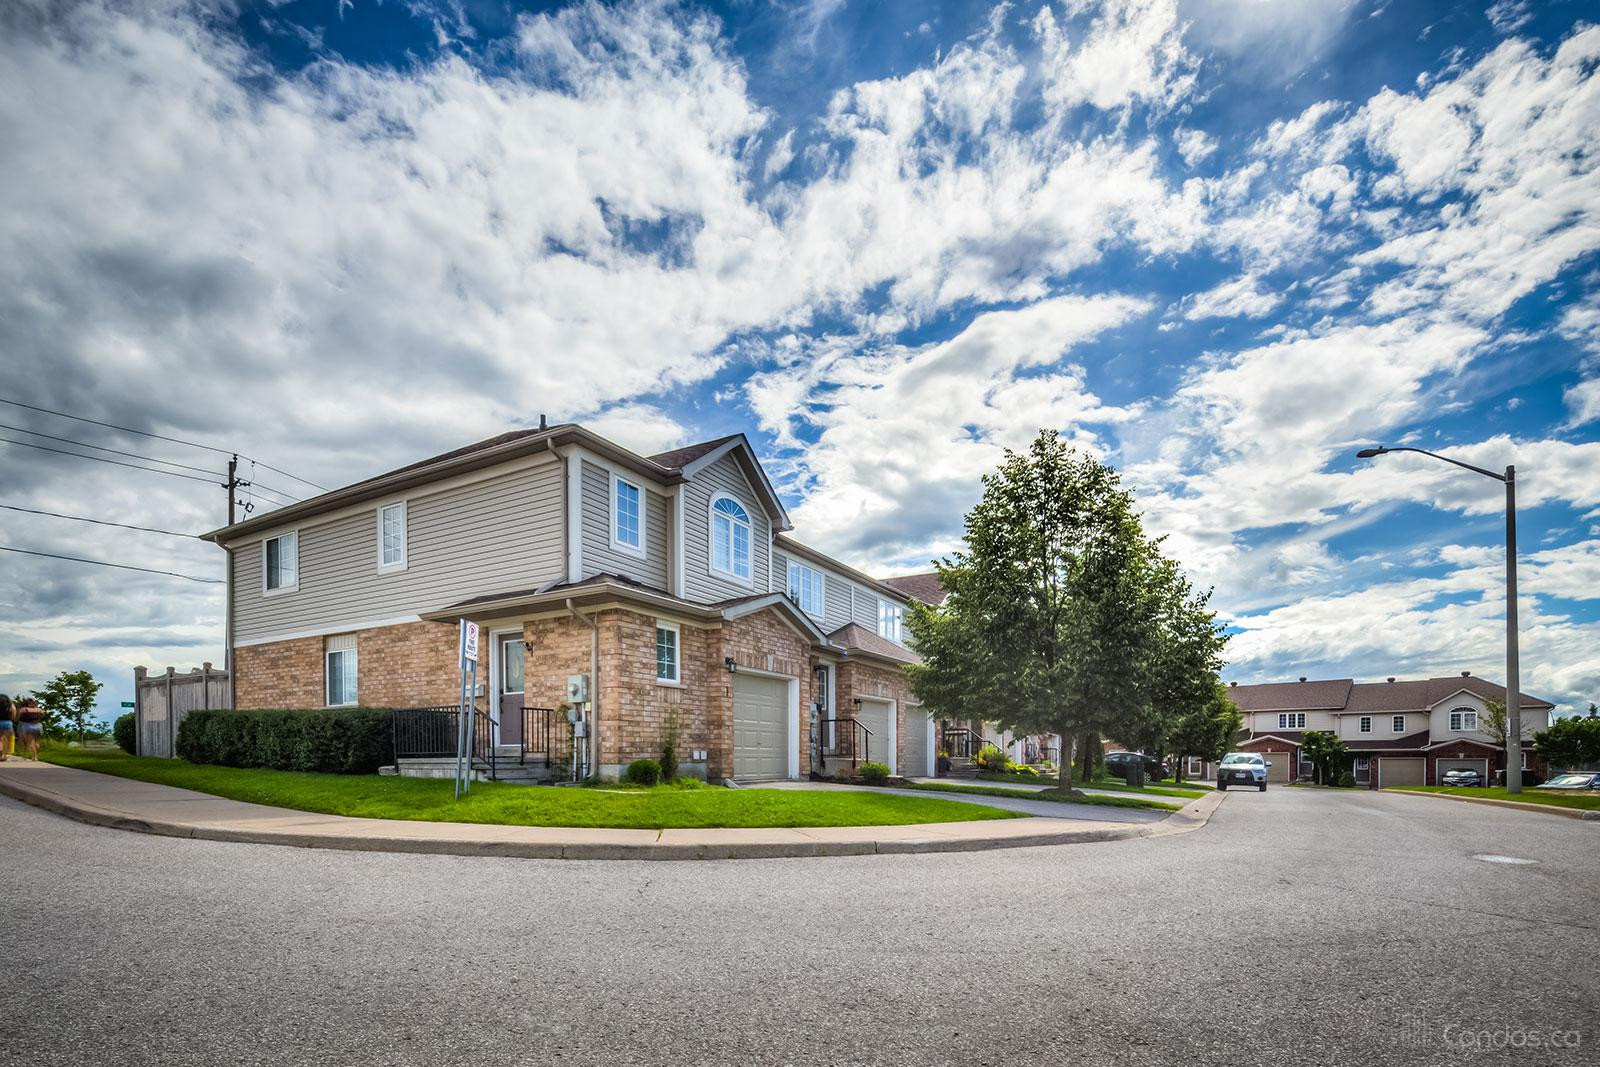 Mapleview Drive Condos at 430 Mapleview Dr E, Barrie 1